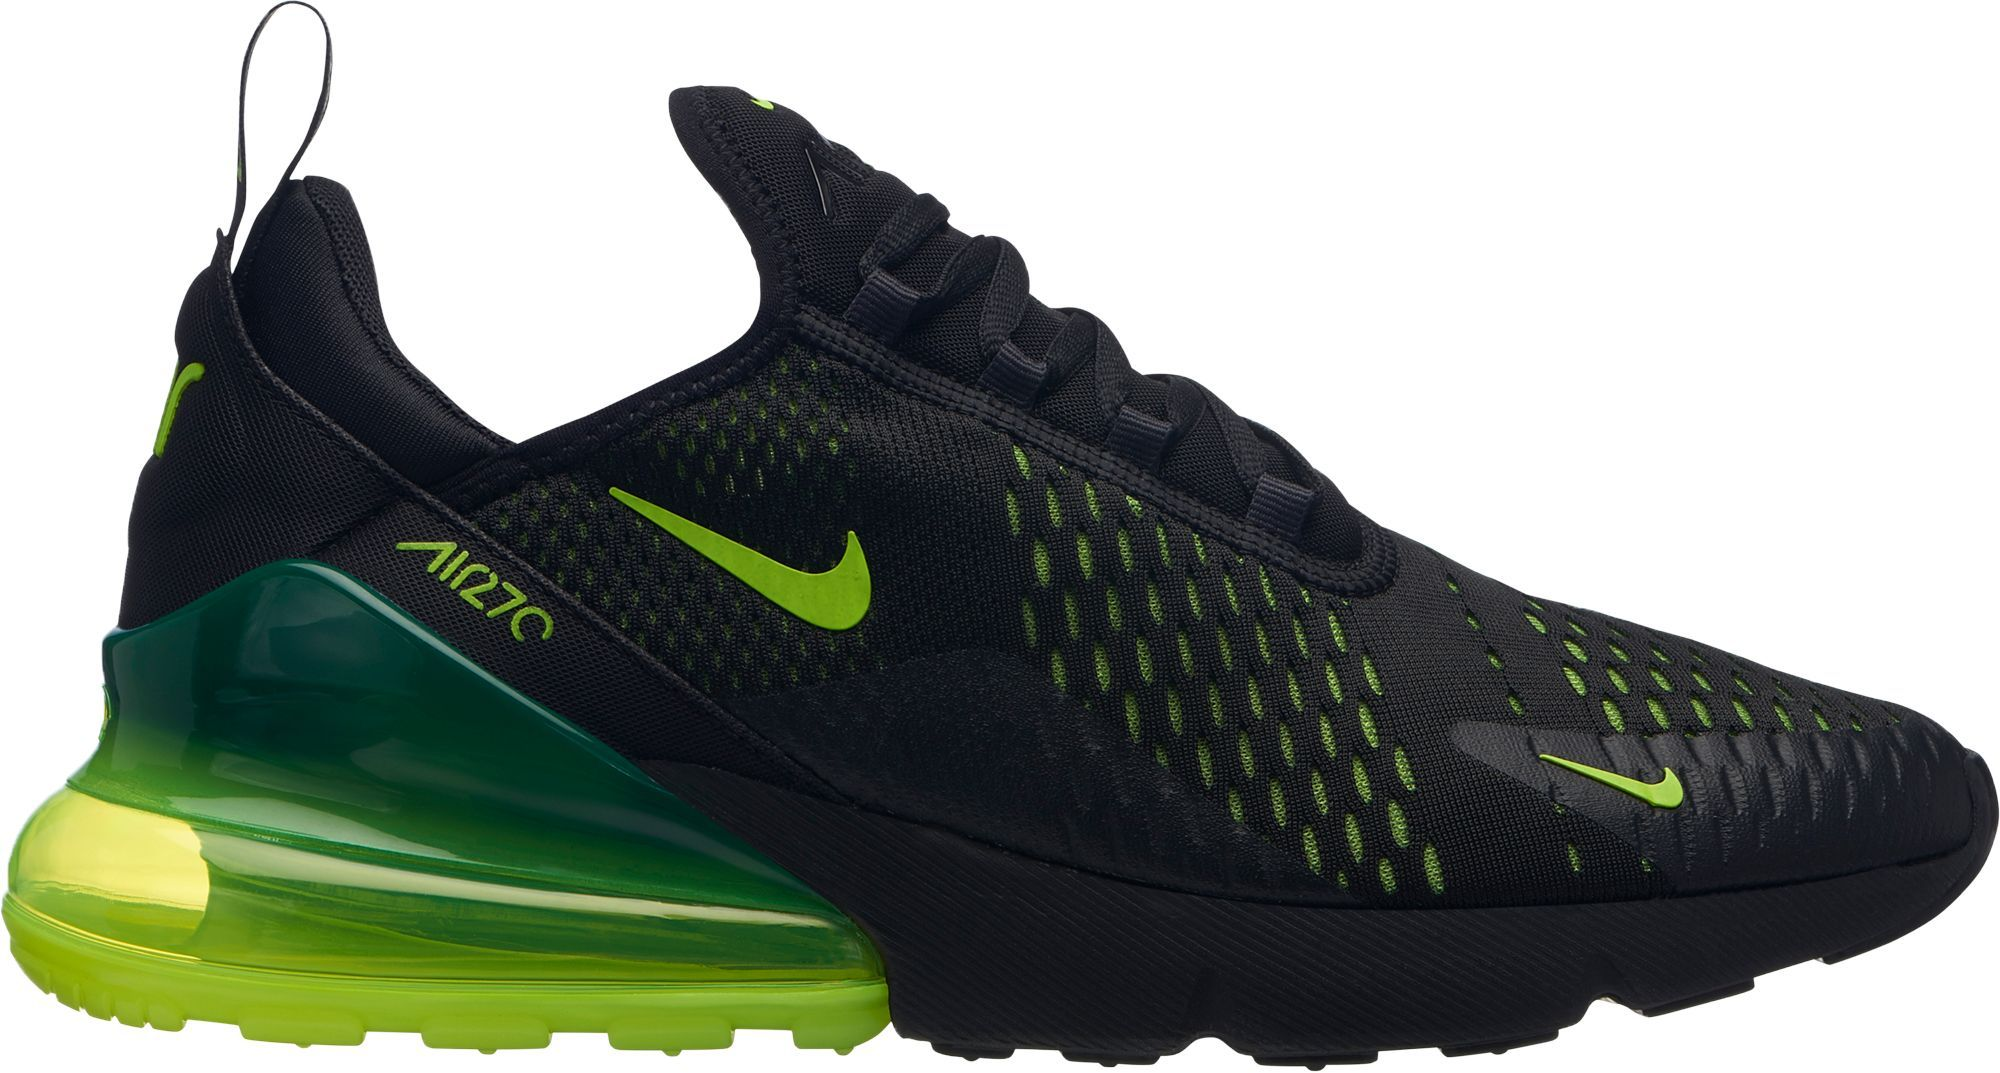 874bf70bfc Nike Men's Air Max 270 Shoes in 2019 | Products | Nike air max, Air ...